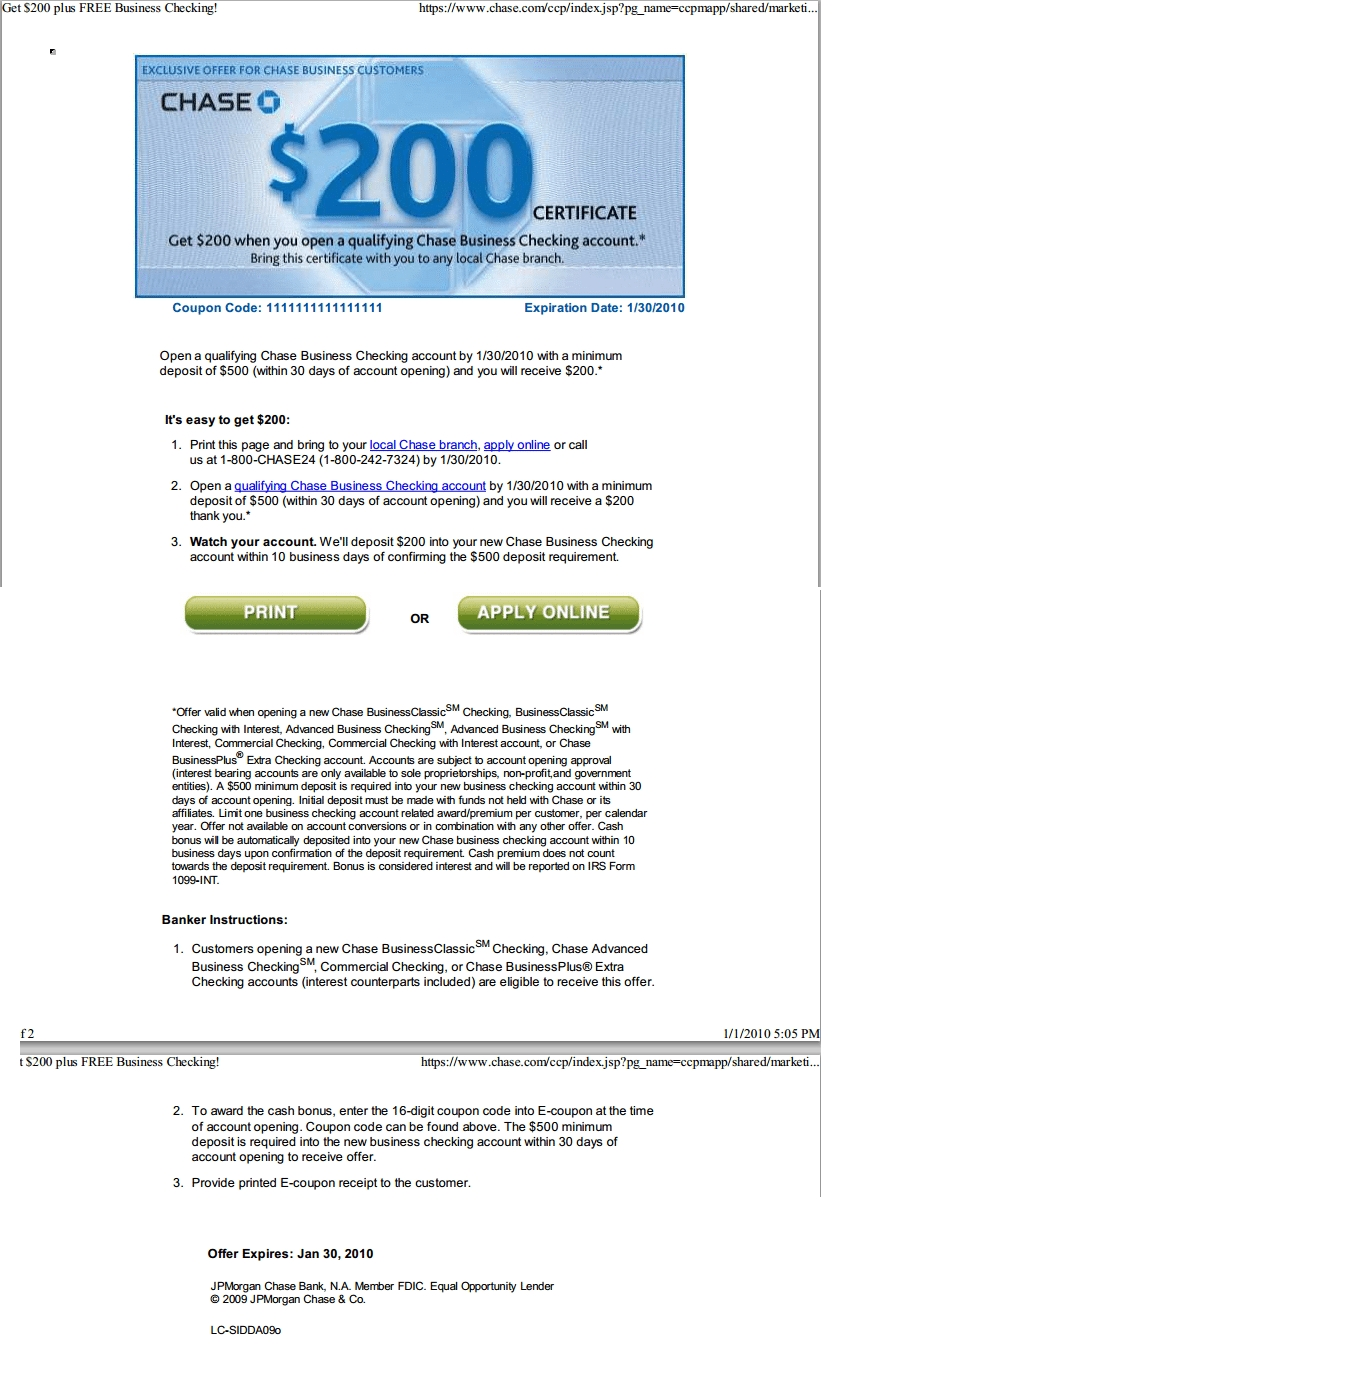 Chase Coupon Codes - Earn Up To $800 In Bank Bonuses